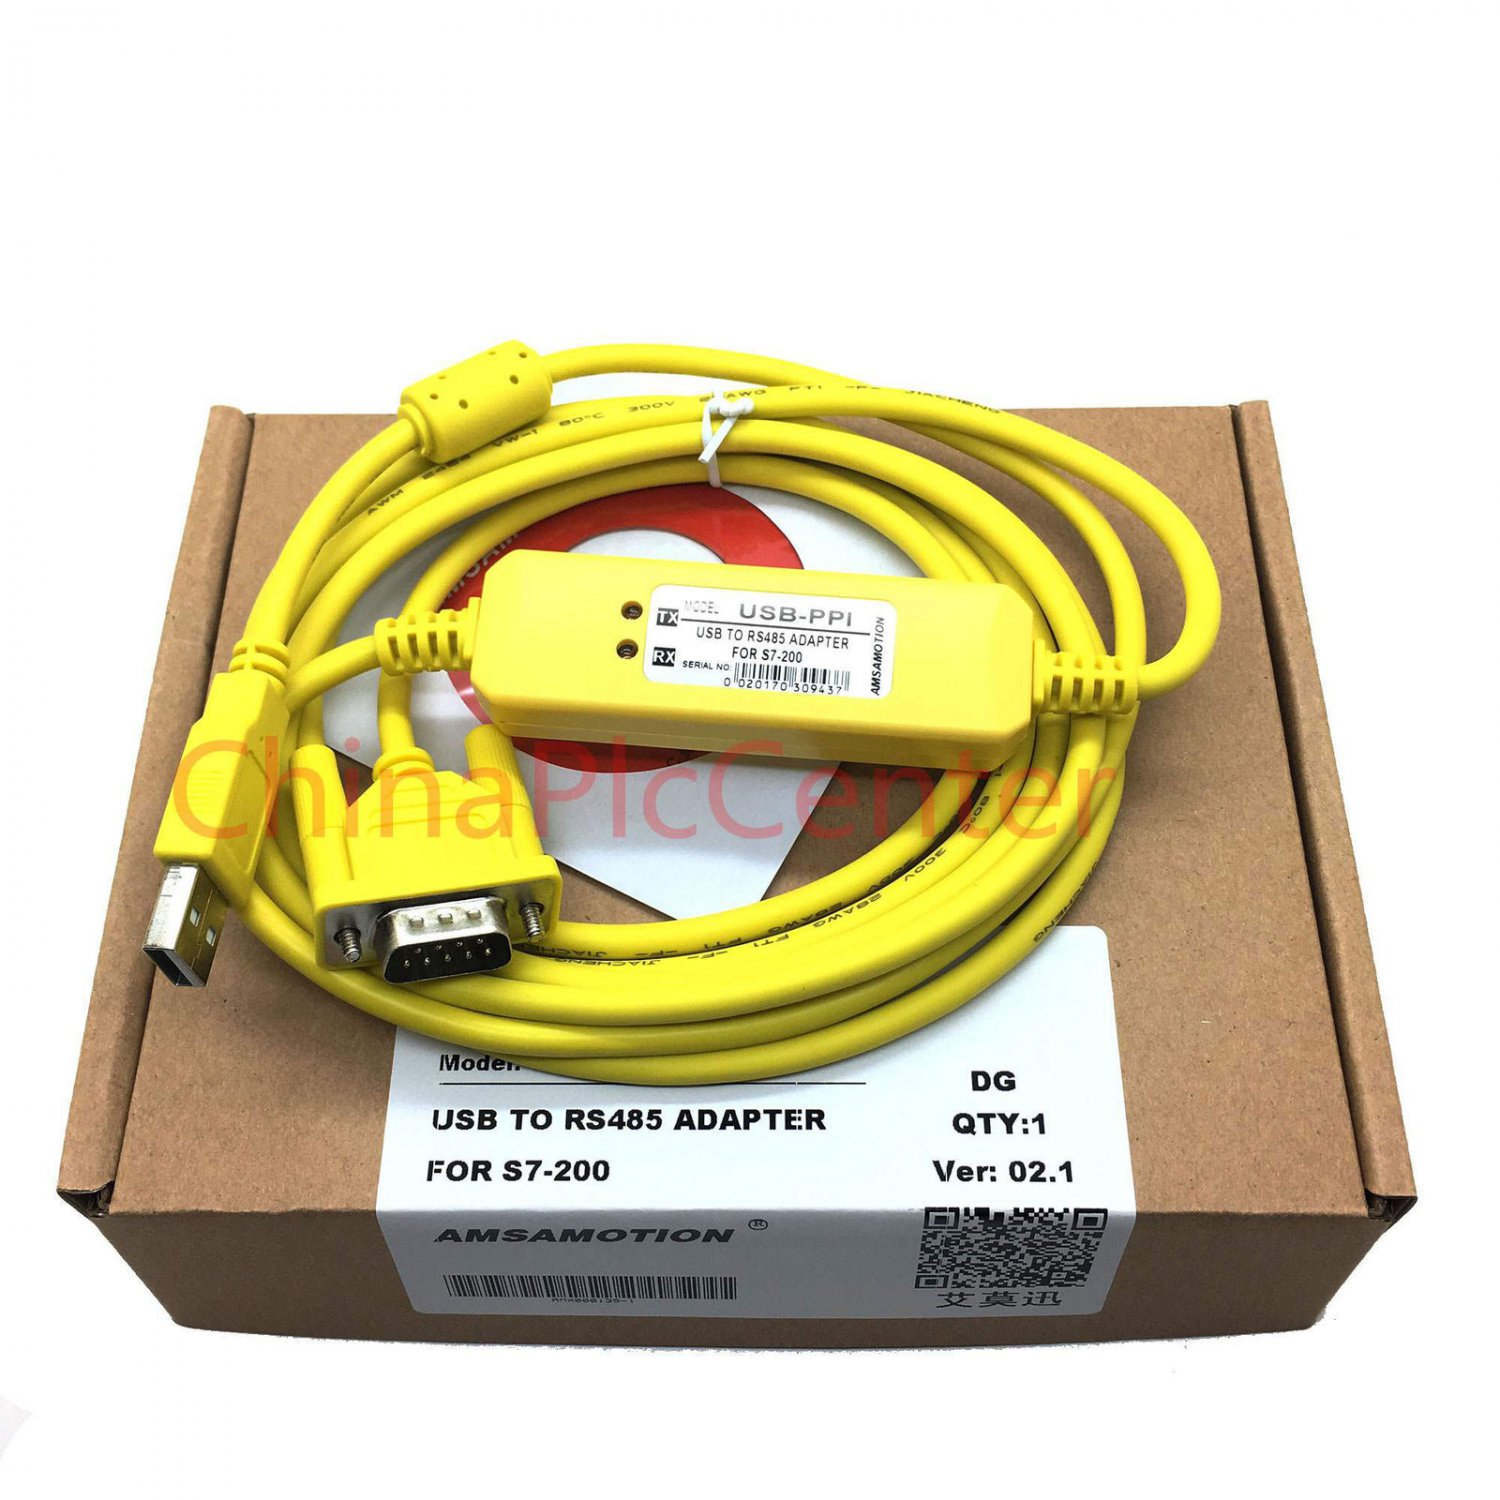 USB-PPI siemens plc Programmer Cable USB to RS485 ADAPTER for Siemens S7-200 PLC